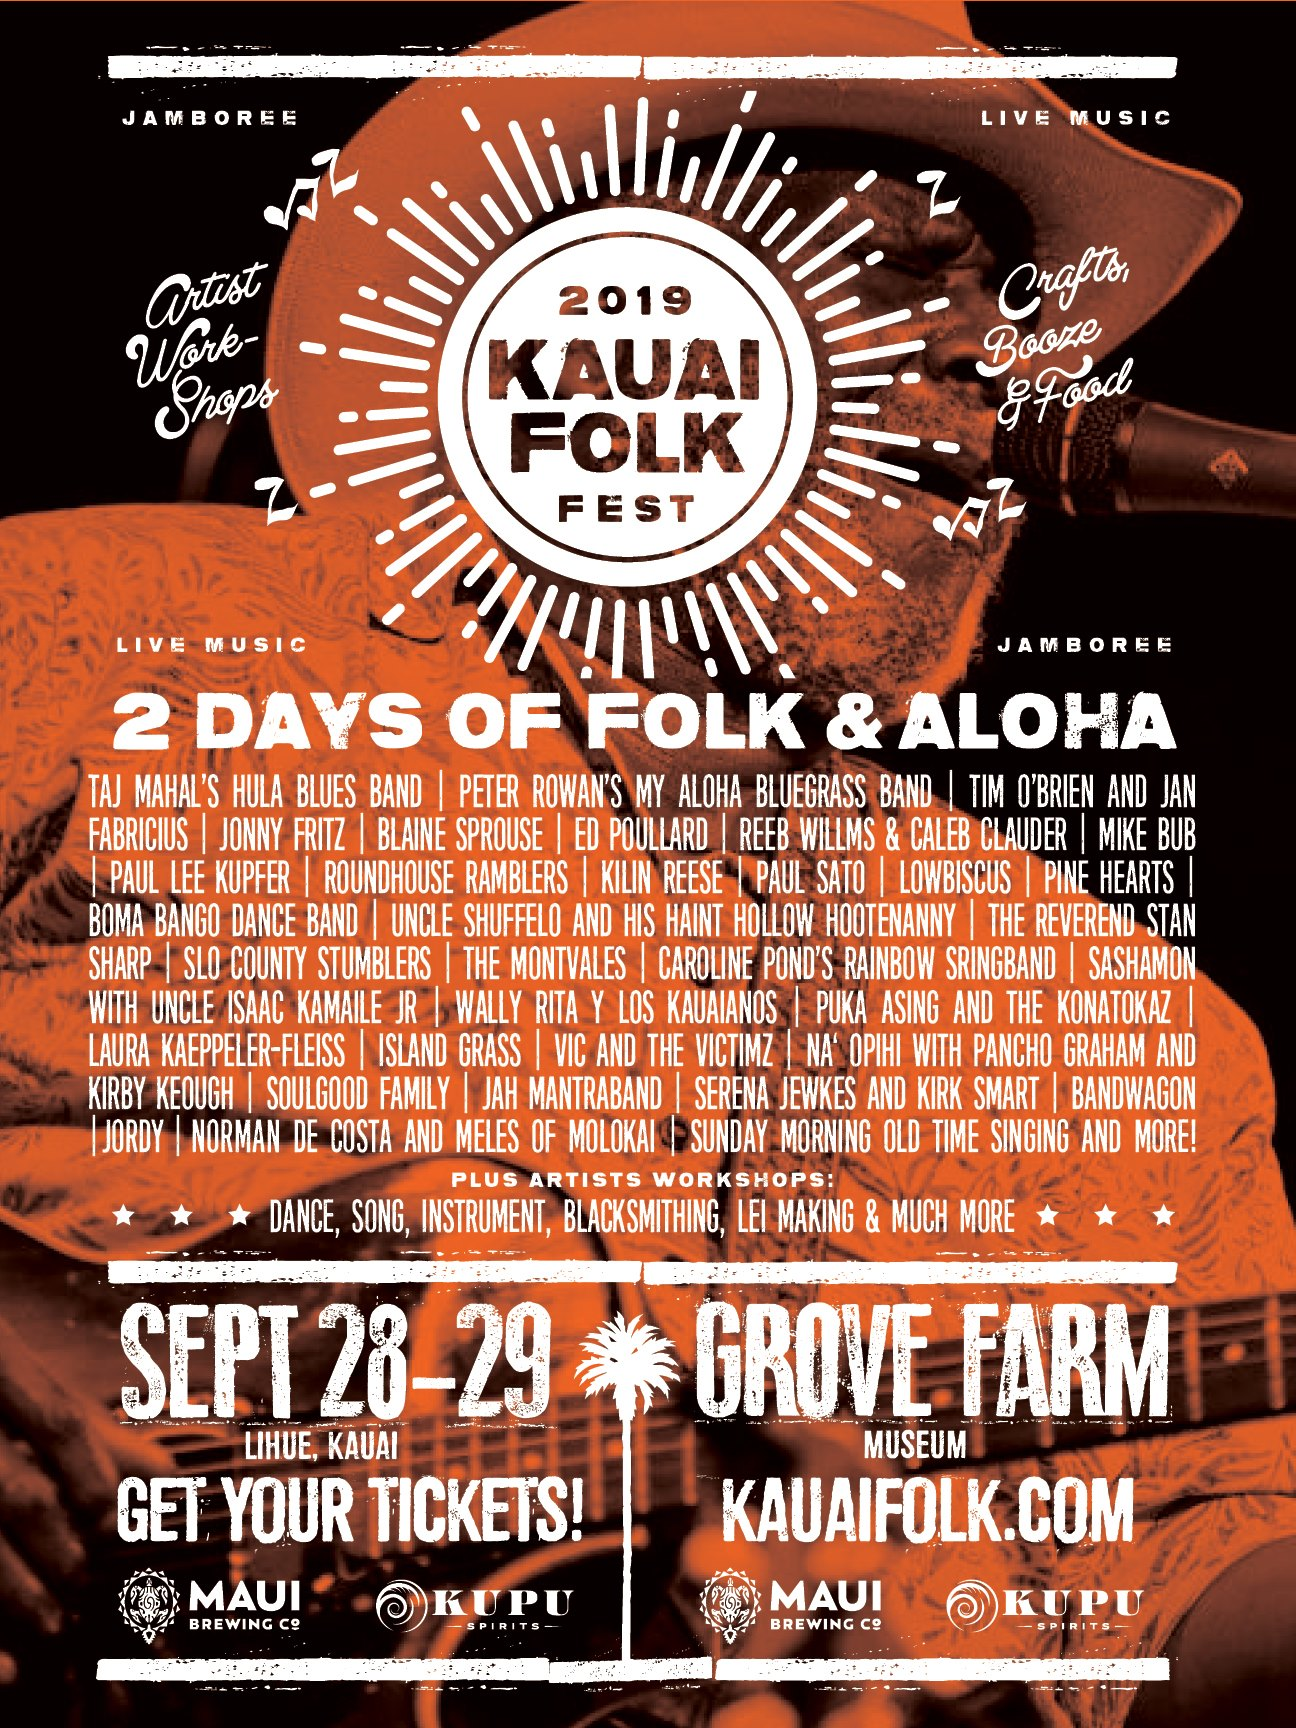 KAUI FOLK FESTIVAL + SASHAMON    The KAUAI FOLK FESTIVAL lineup is one to drool over. Head over to  www.KAUAIFOLK.com  to sneak your peak at it.   The Kauai Folk Festival  (September 28-29 at Kauai's Grove Farm Museum) is two full days of music, dance, craft, food, and drink in one of the most beautiful settings on Earth.   Two Days Of Folk And Aloha    Sept 28 - 29, Saturday and Sunday   Historic Grove Farm Museum,34+ Live Music Acts, Five Performance Stages ,Crafts and Workshops, Food and Booze, Family Fun, Much More...!  ....A Whole Bunch of Boot Stomping, Rump Shaking, Kauai Loving, Hooting And Hollering Good Times!Mike Love Band Sat, Sep 28, 2019, 11:00 AM – Sun, Sep 29, 2019, 11:00 PM HST 5-2723 Kuhio Highway, Kilauea, Kauai Tickets: $60 – $300 Available at:  https://www.eventbrite.com/e/kauai-folk-festival-tickets-58325836146  TICKETS ON SALE NOW